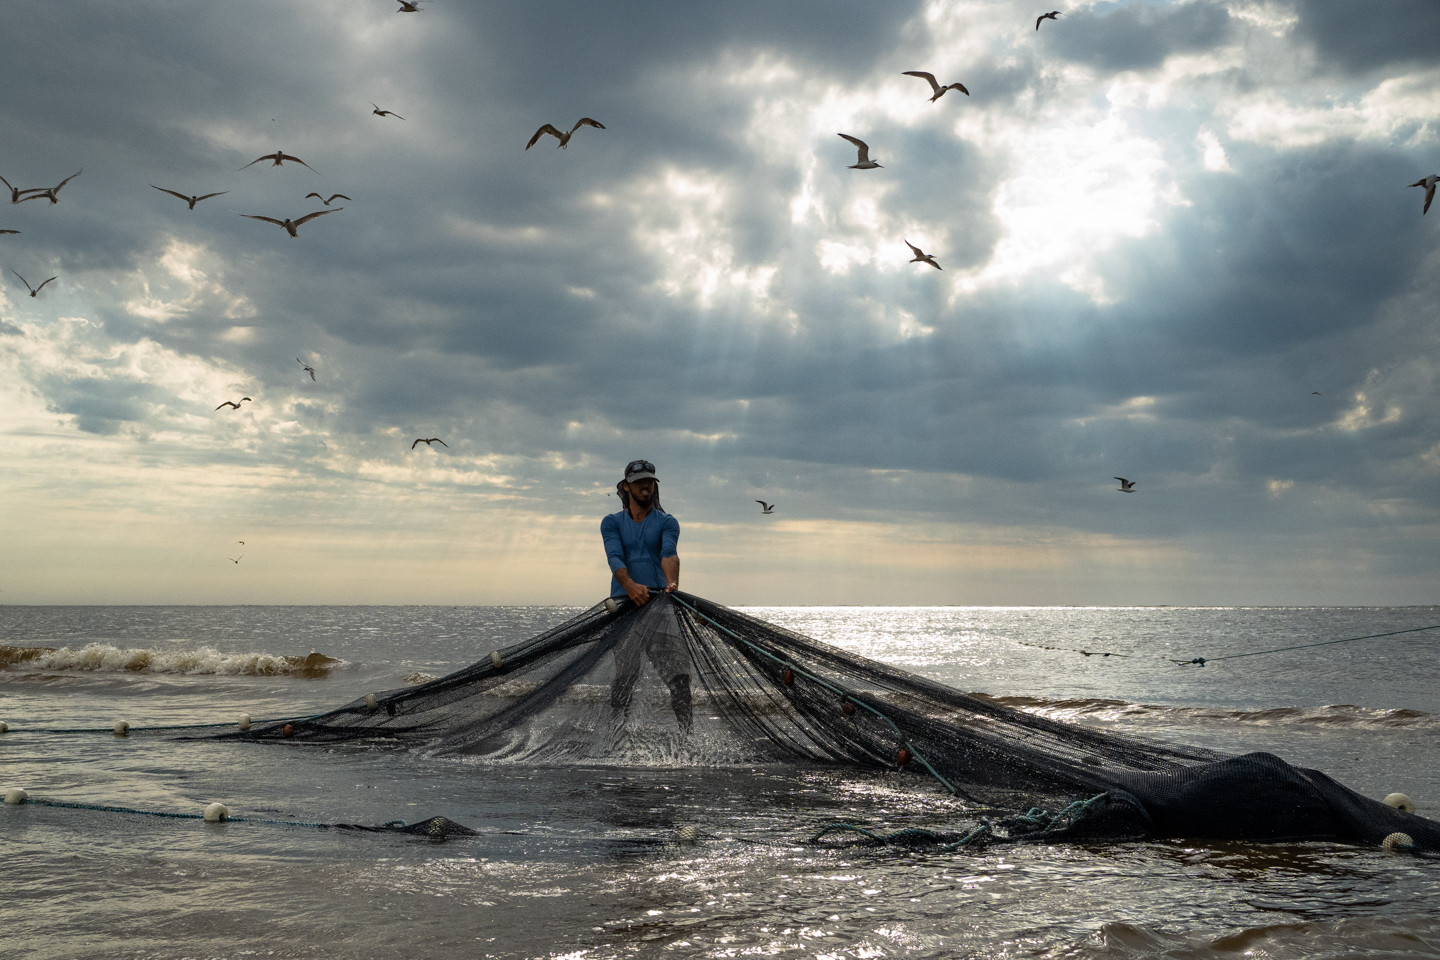 A caiçara man surrounded by seagulls pulls the fishing net during the traditional artisanal fishing of manjubas (Anchoviella lepidentostole) in Ilha Comprida, Sao Paulo state, Brazil, February 19, 2020.